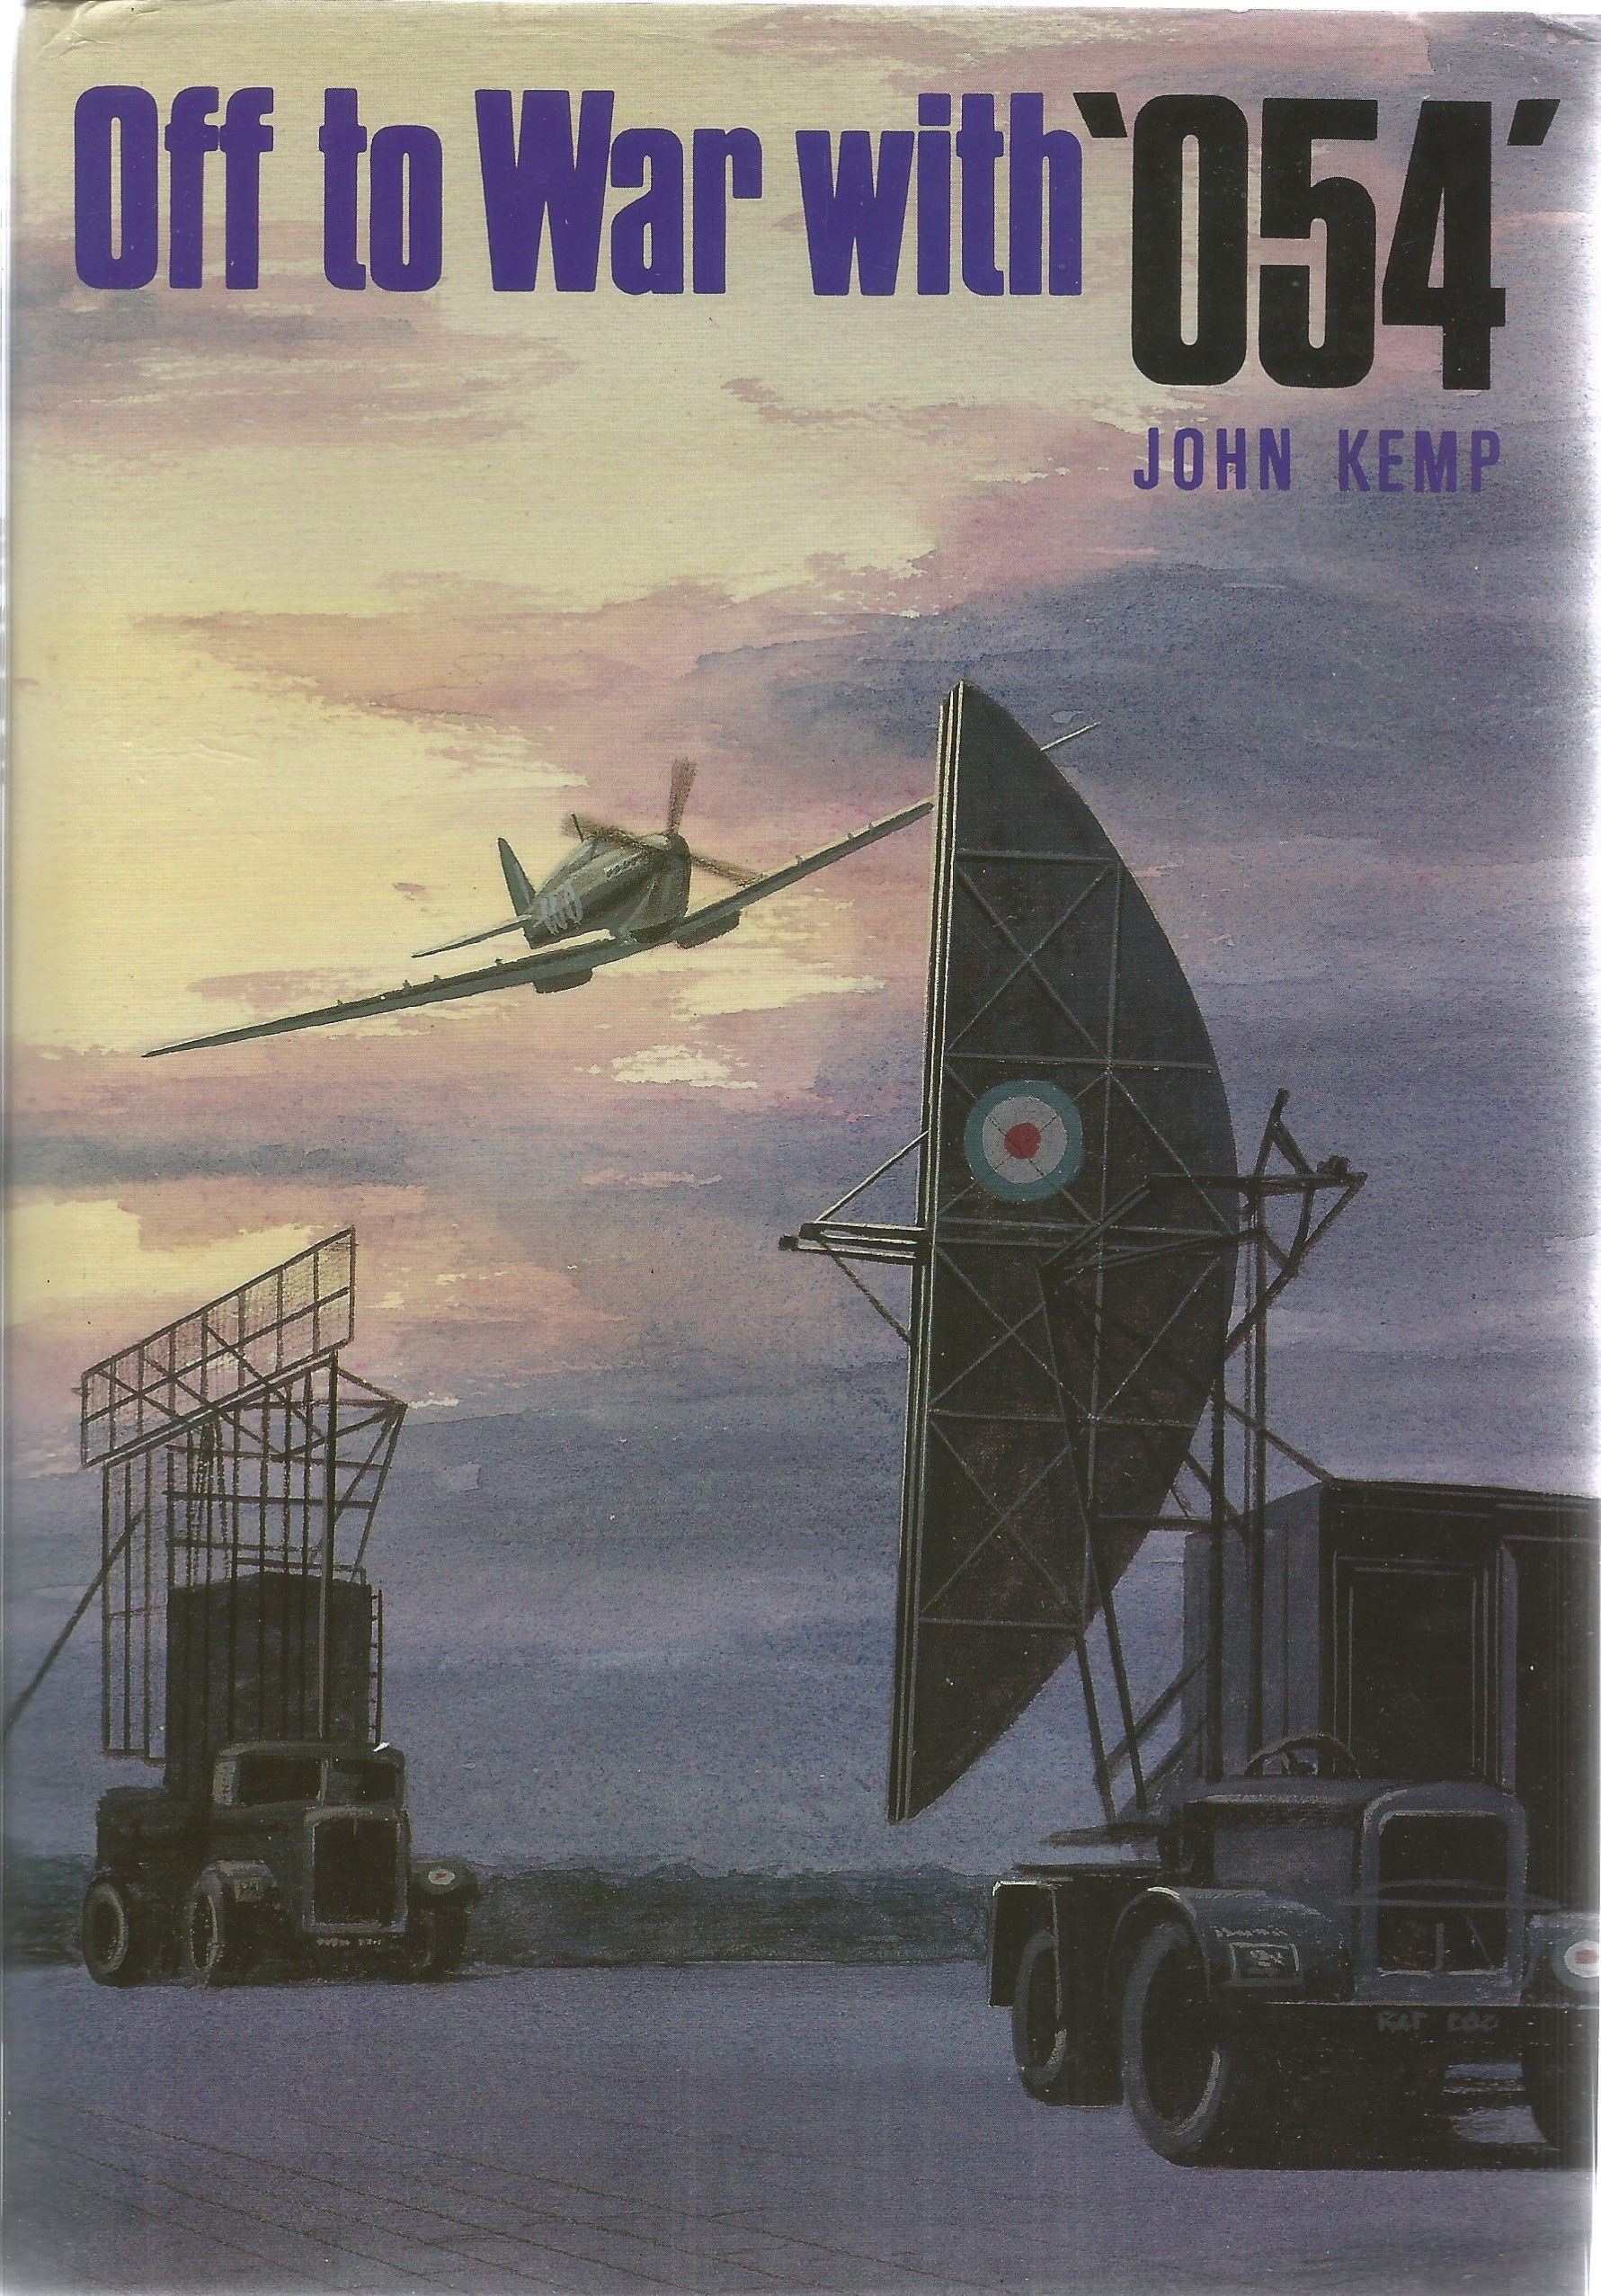 John Kemp. Off To War With 054. A WW2 First Edition Hardback book in good condition. Signed by